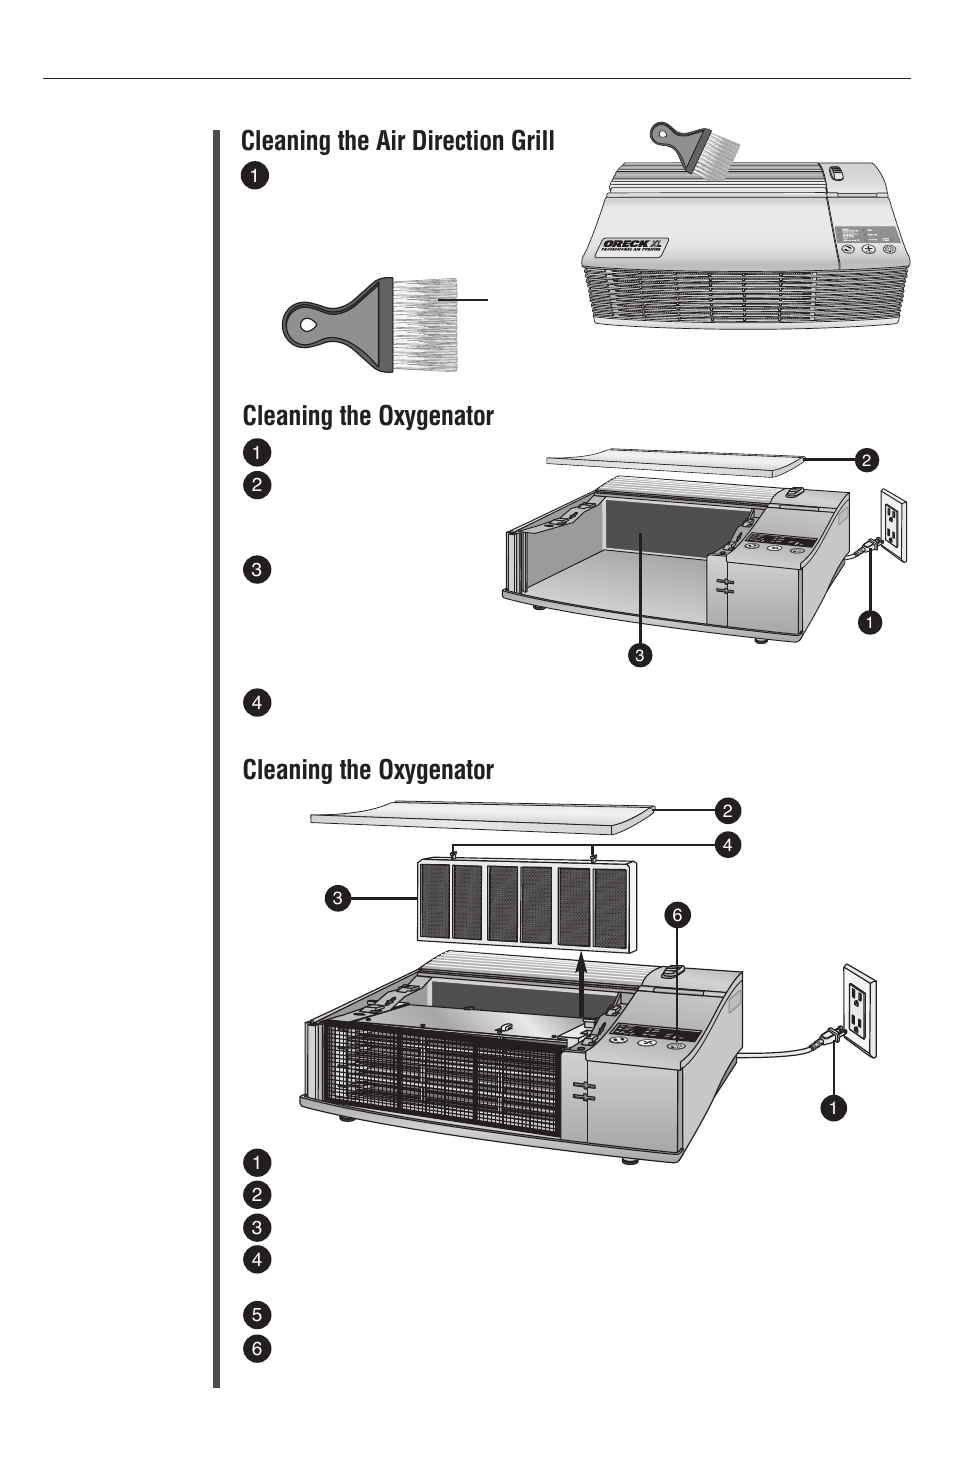 Maintenance 10 Cleaning The Air Direction Grill Oxygenator Oreck Xl Рrofessional Purifier Airp Series User Manual Page 36